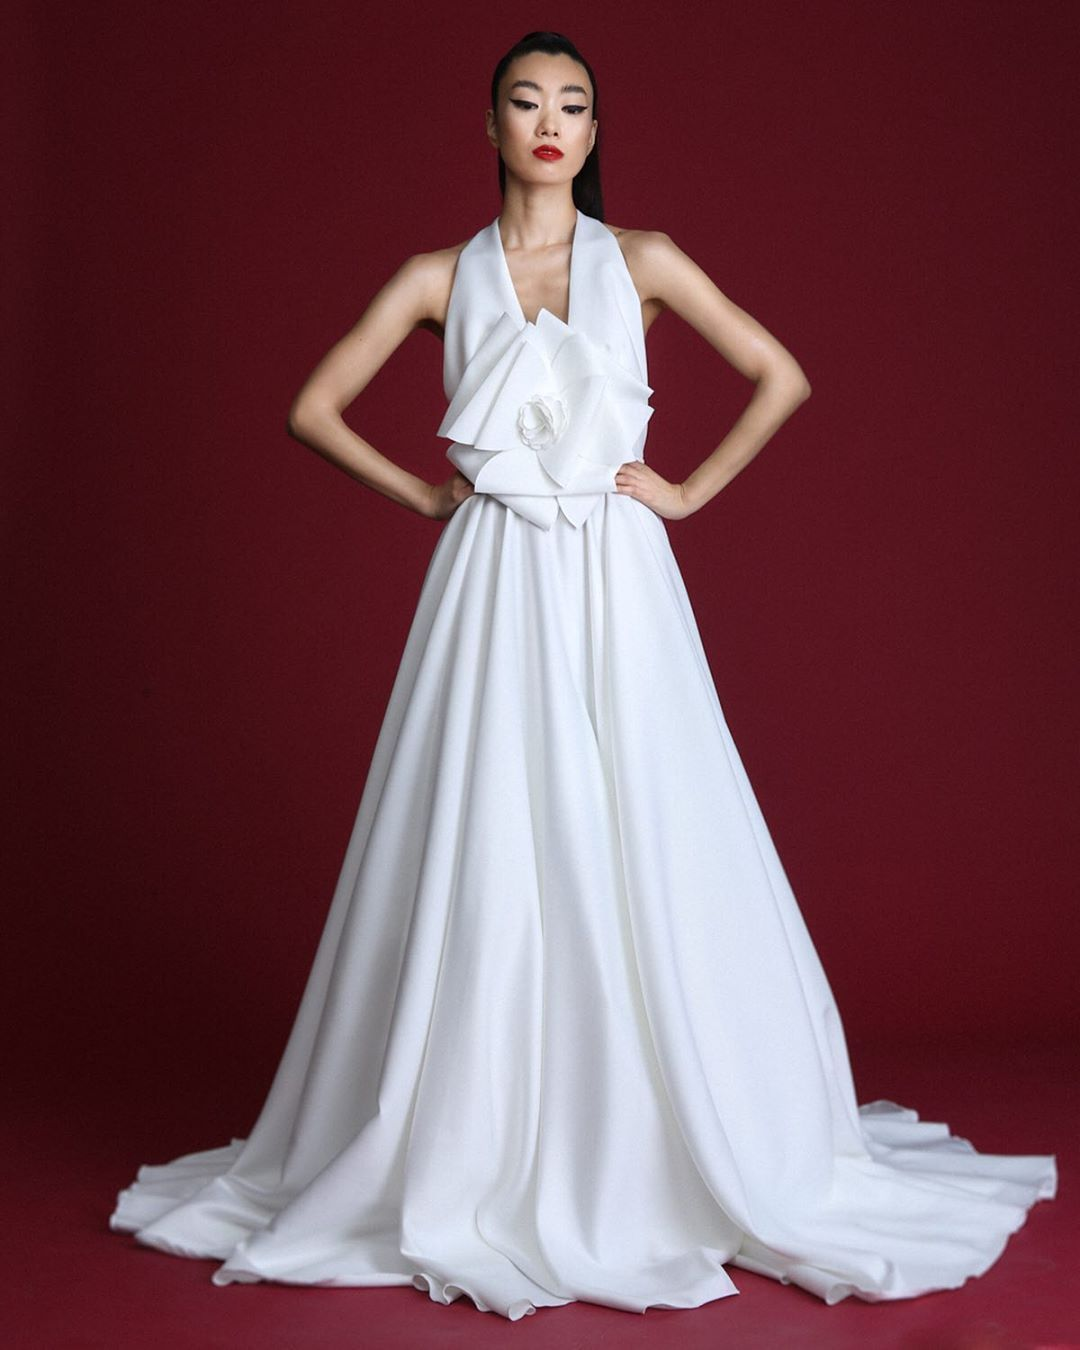 "Cyril Verdavainne on Instagram: ""Cyril Verdavainne Fall 2020 www.cyrilverdavainne.com Ivory duchess satin jubilee full gown with origami flower embelishment. Color…"""